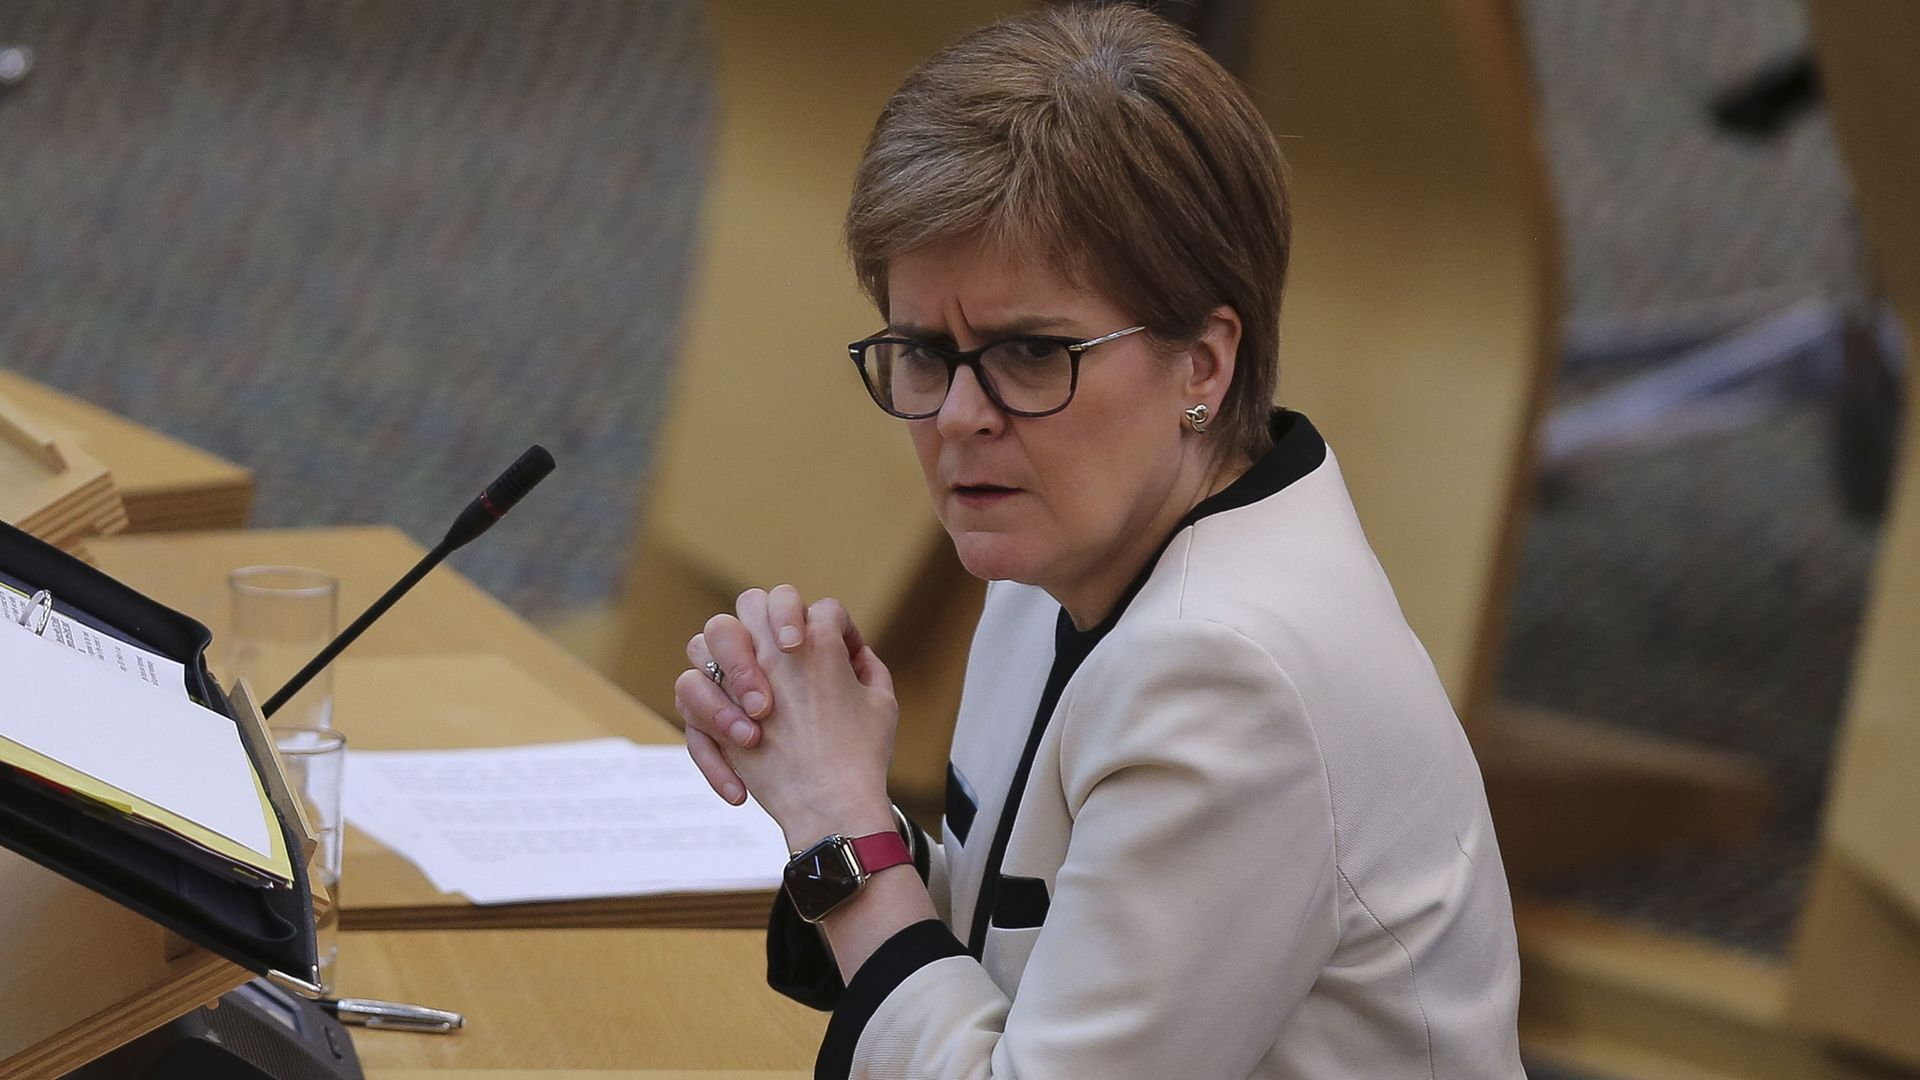 First Minister Nicola Sturgeon during First Minister's Questions at the Scottish Parliament in Holyrood - Credit: PA